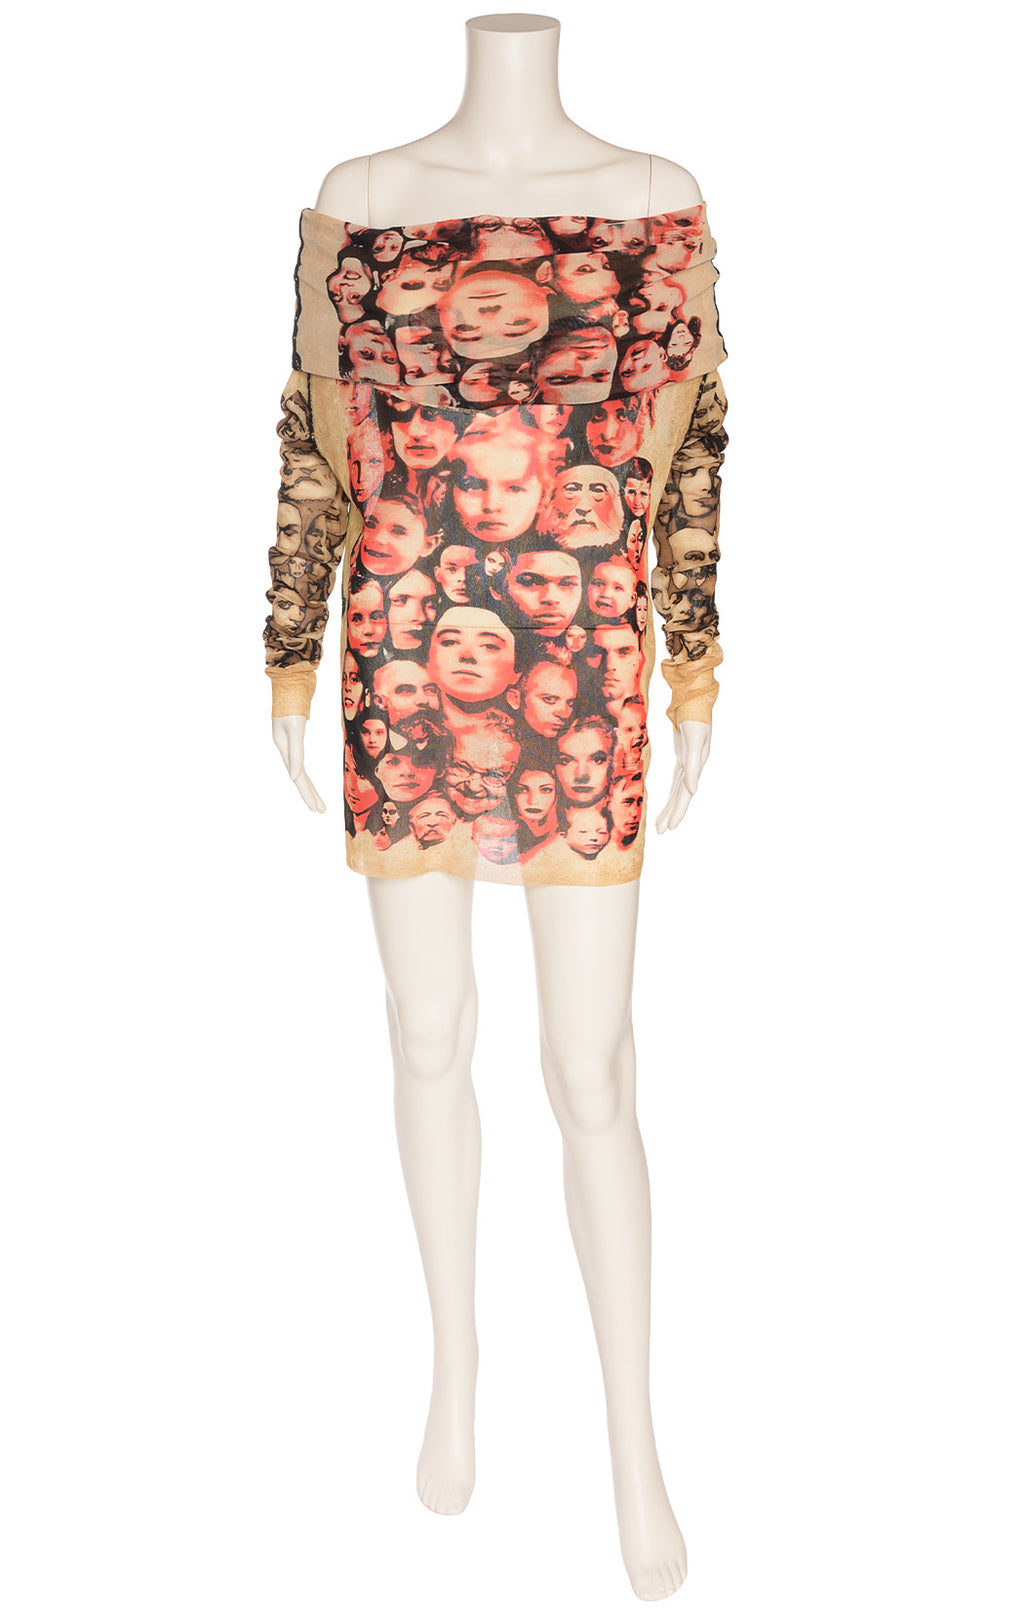 Multi-colored face print mini dress with long sleeve and off the shoulder collar